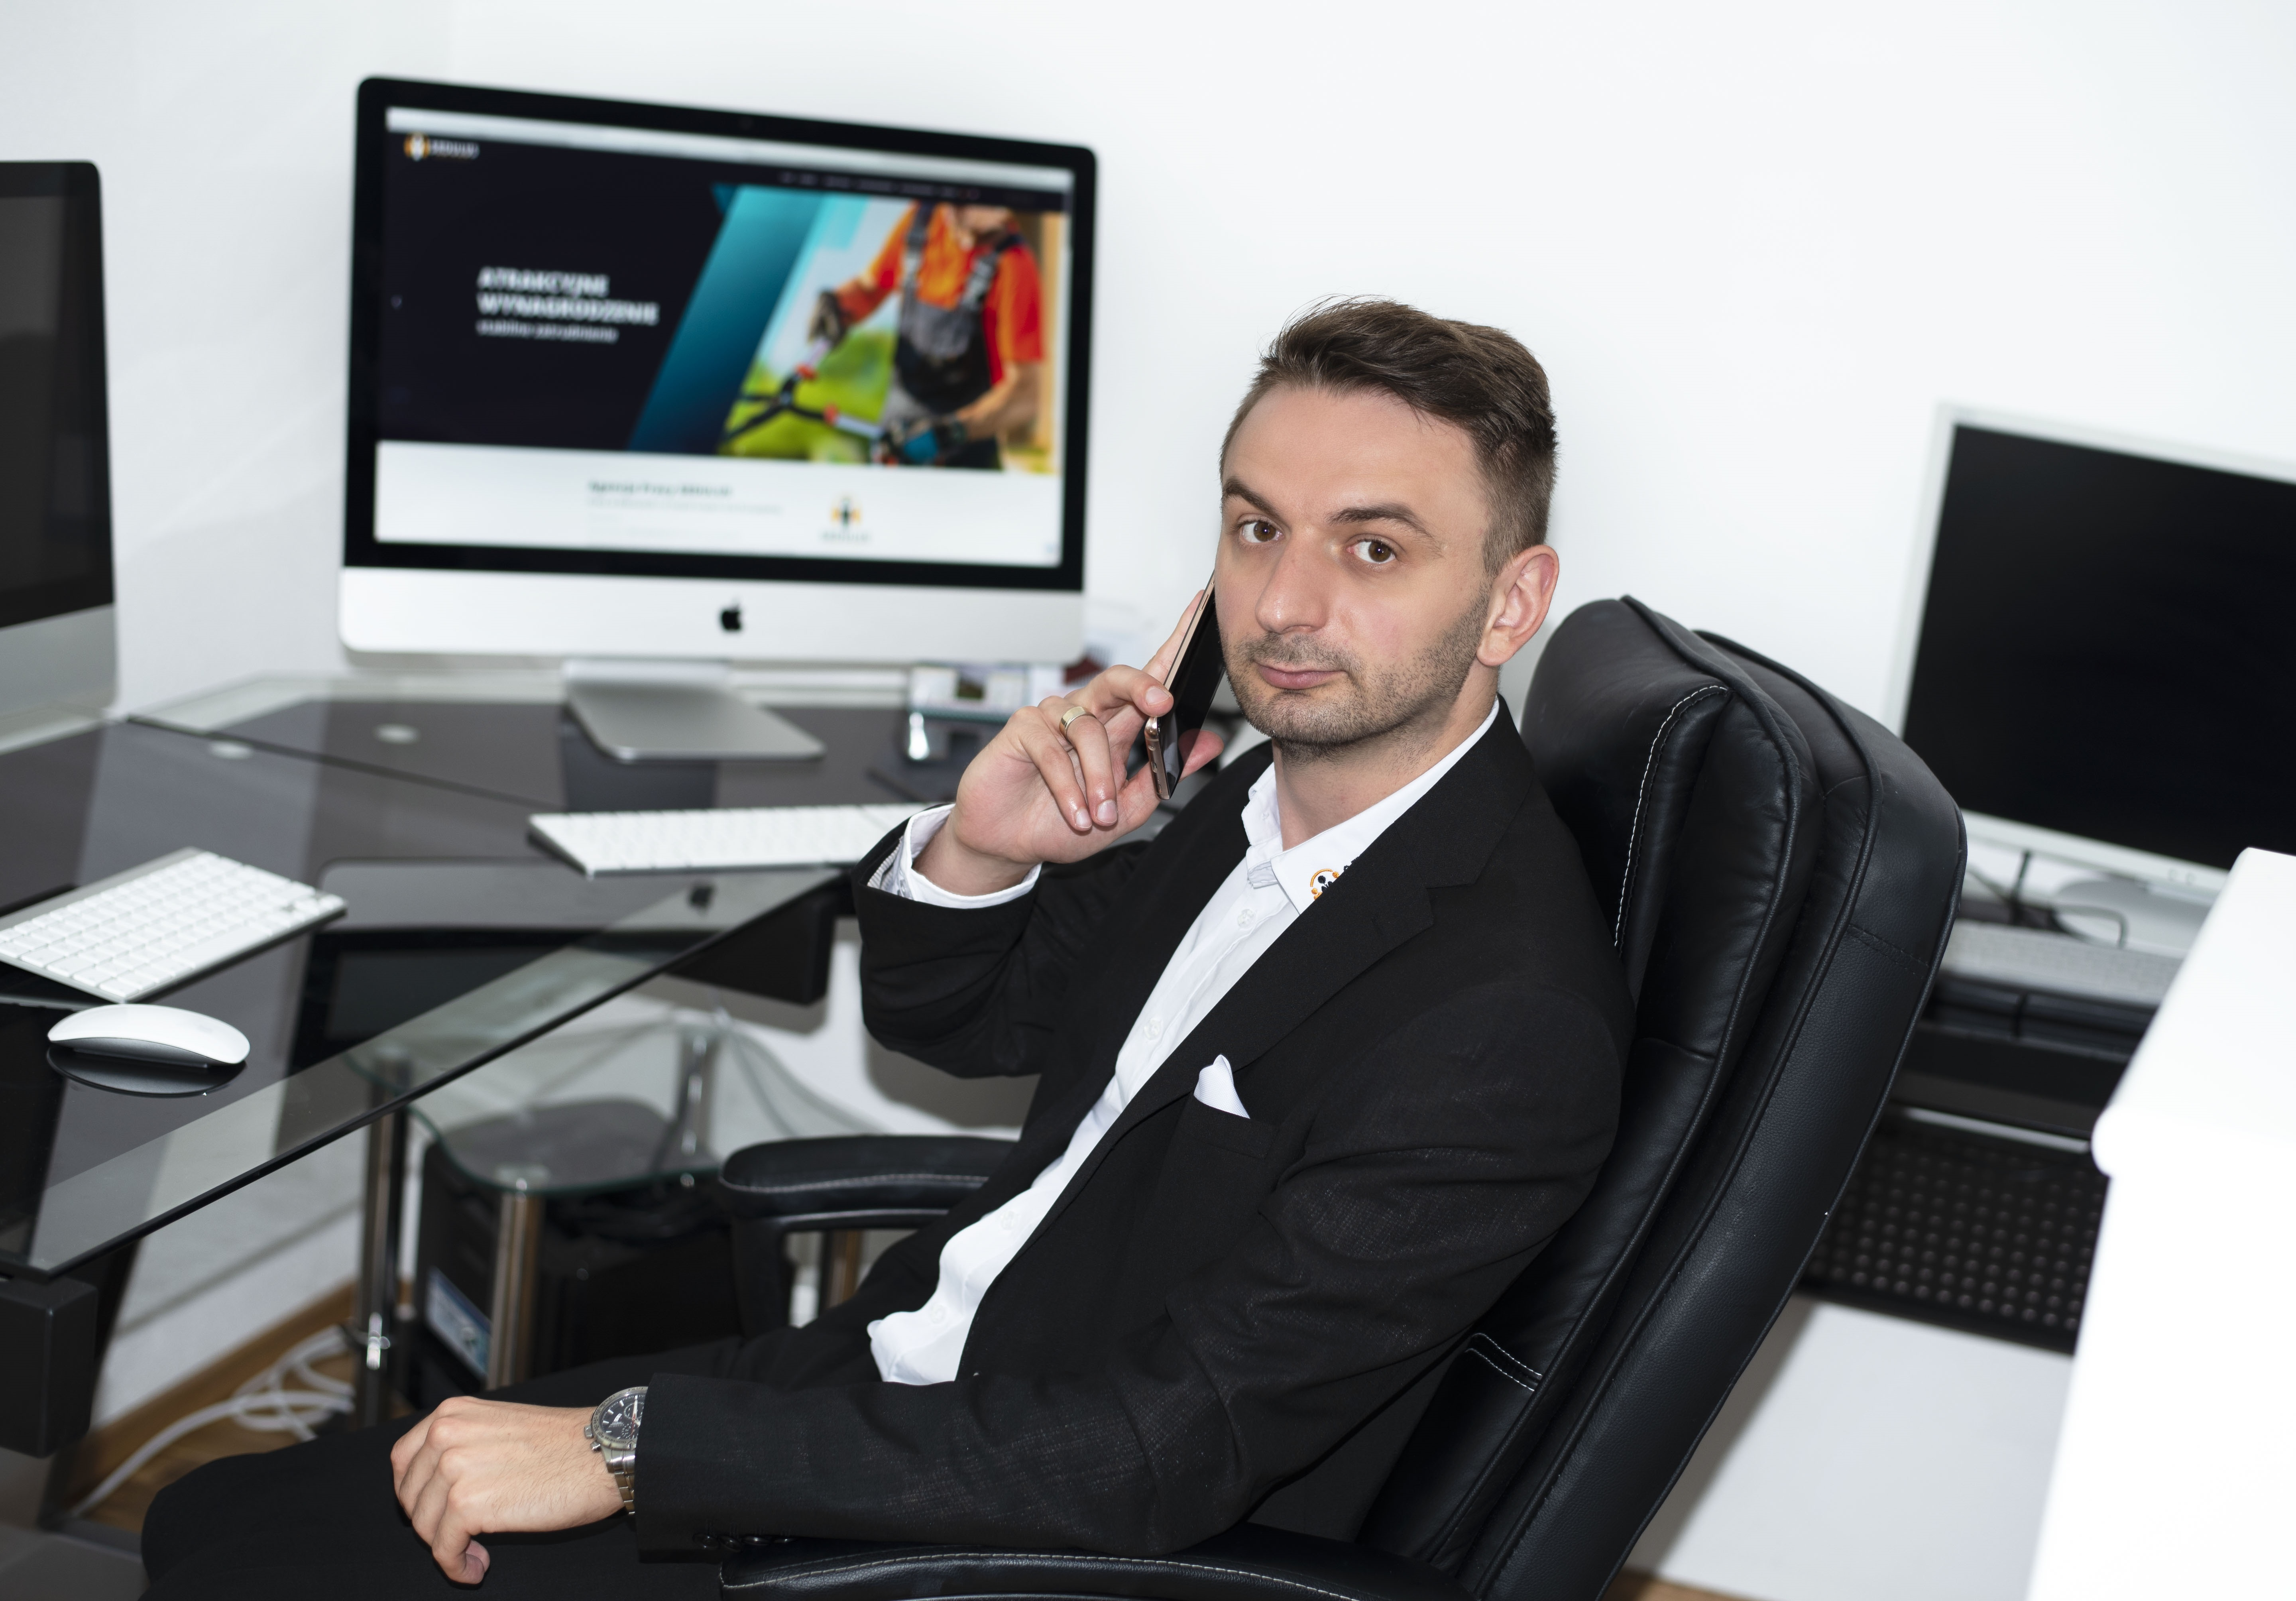 Oliwer Mikus - business consultant in Germany and Poland